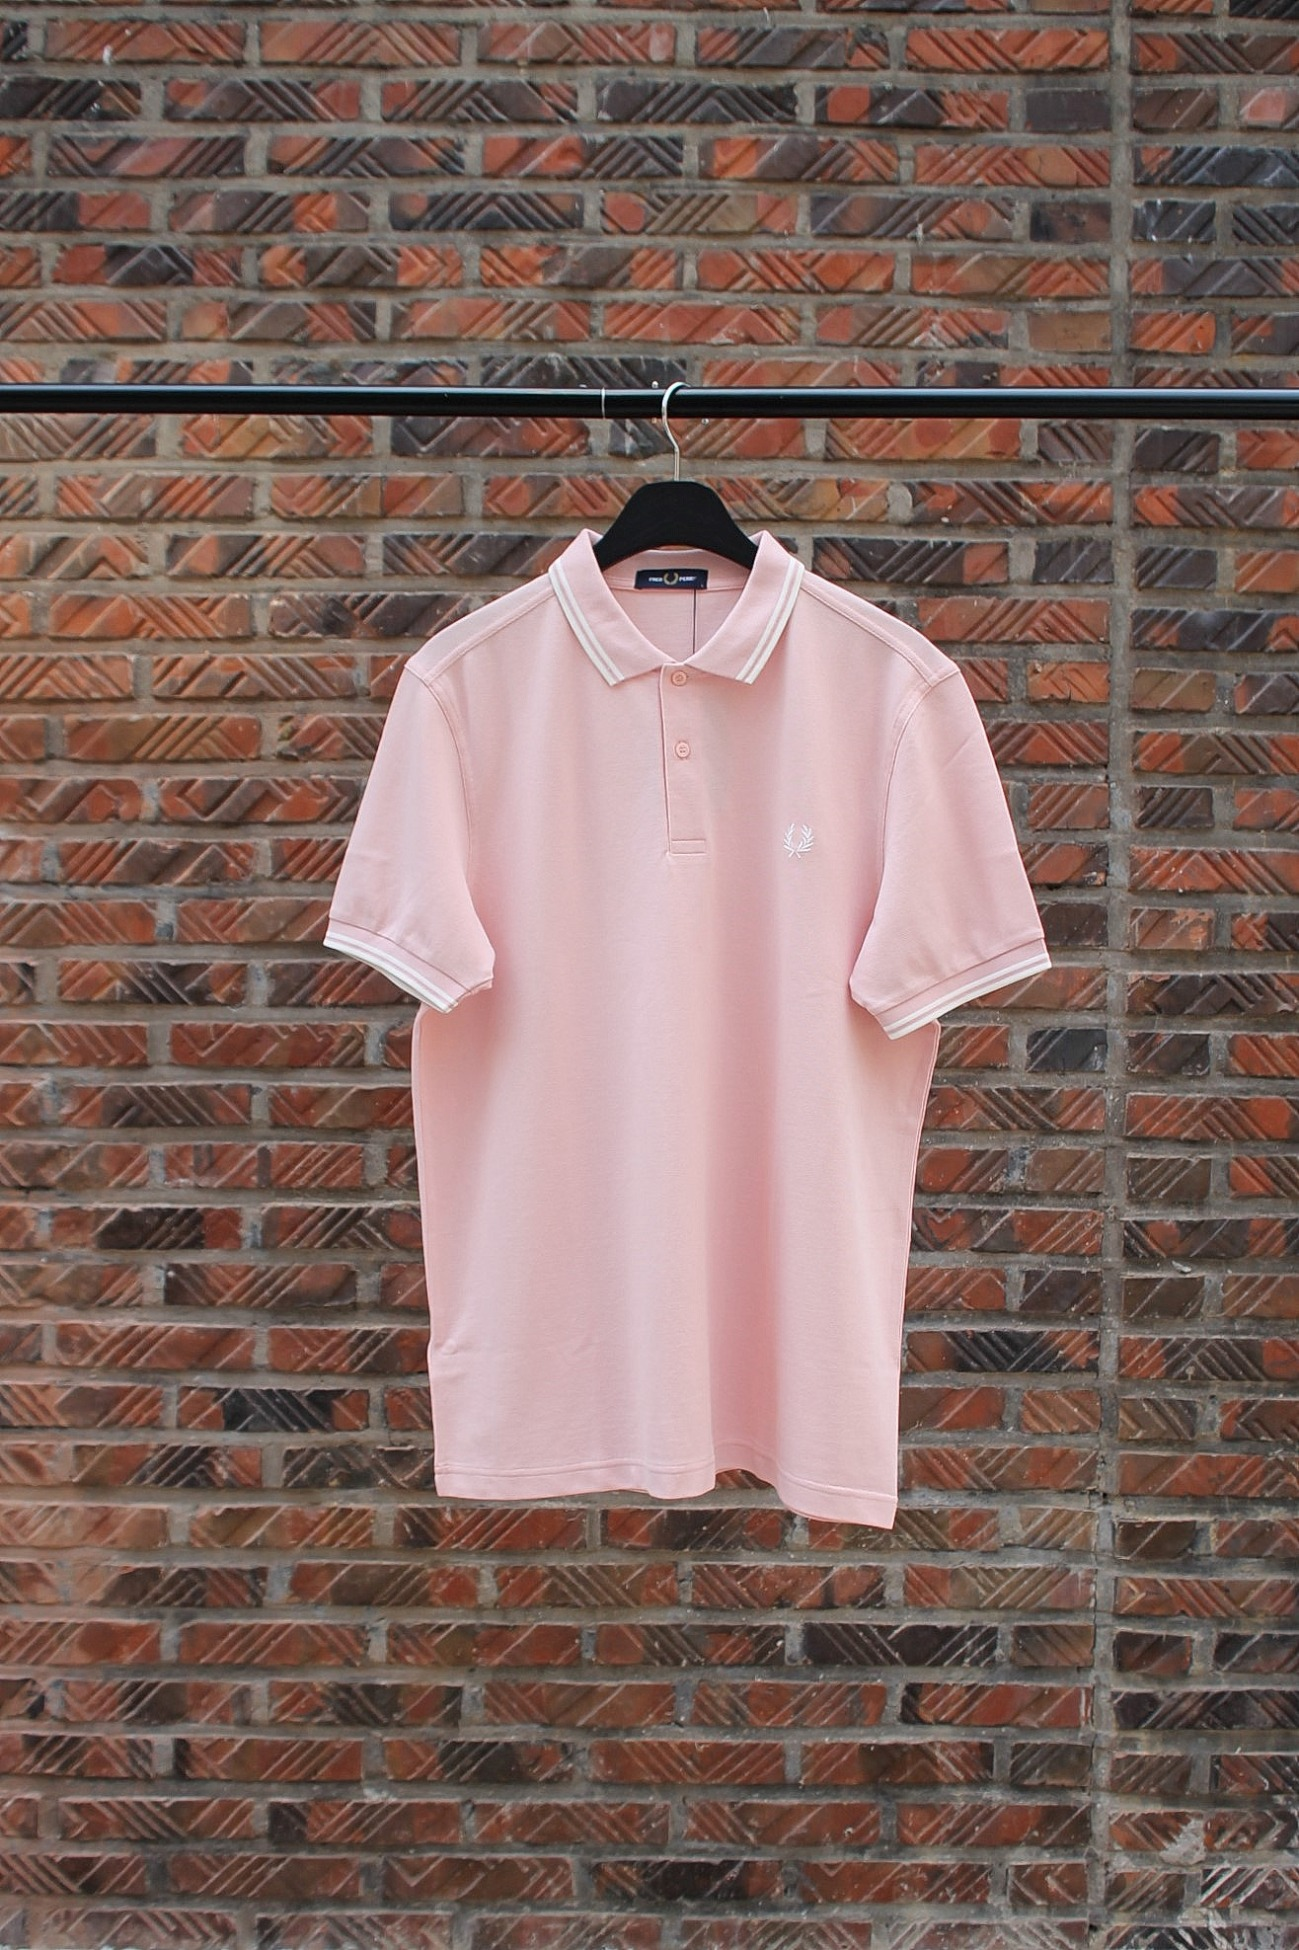 [FRED PERRY] Twin Tipped Fred Perry Shirt - Silver Pink / Snow White